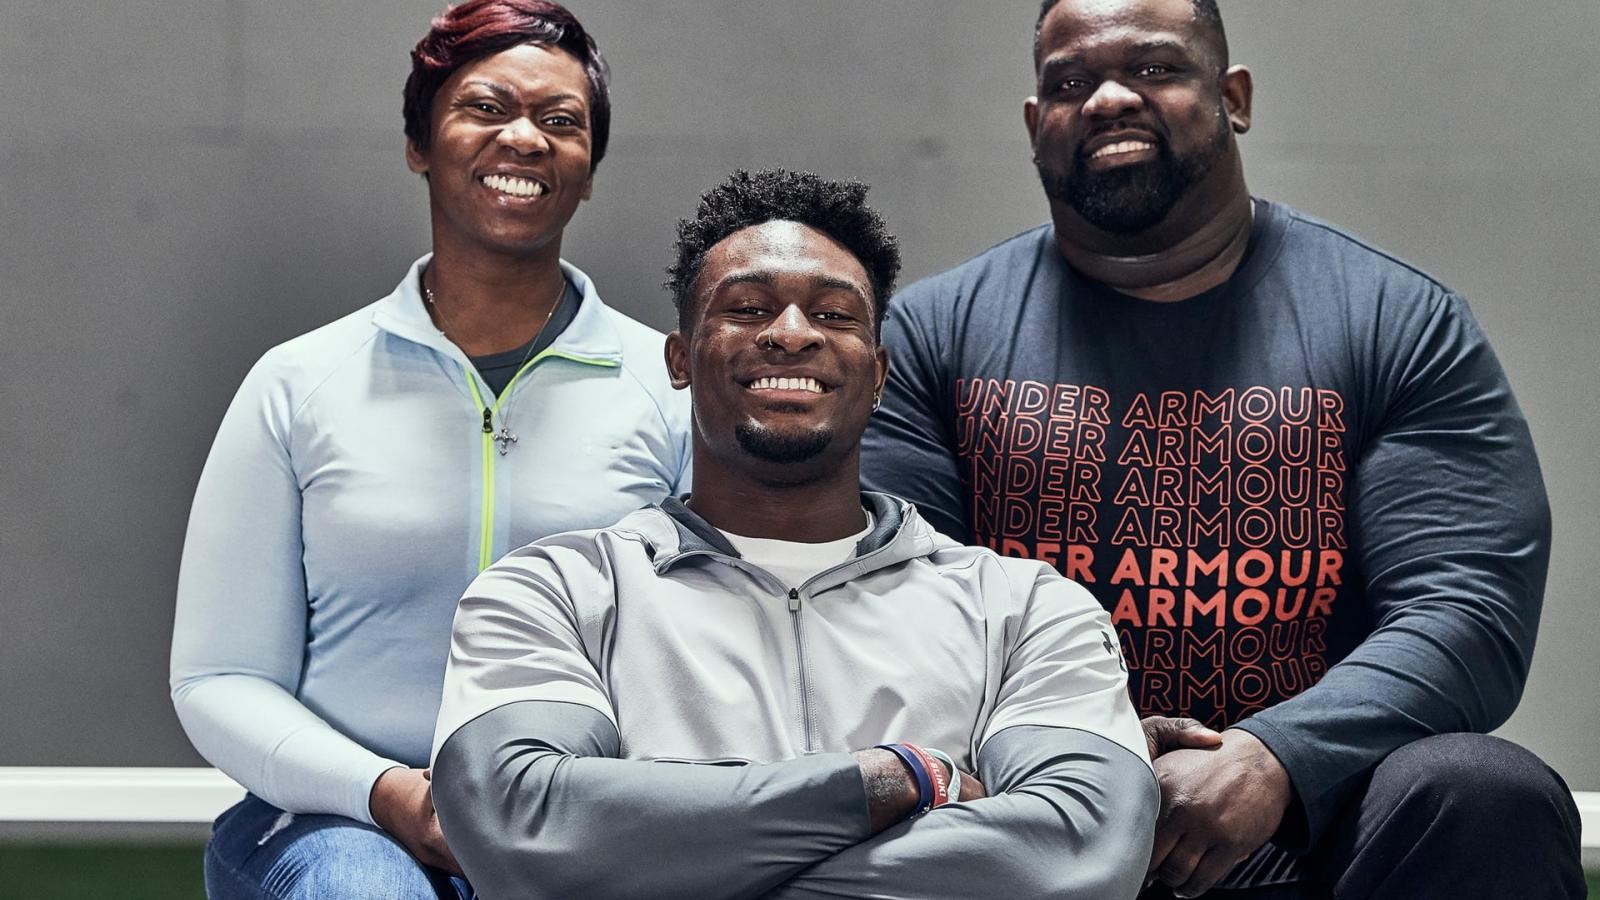 D.K. Metcalf's parents, Tonya and Terrence, introduce their son into the Under Armour family